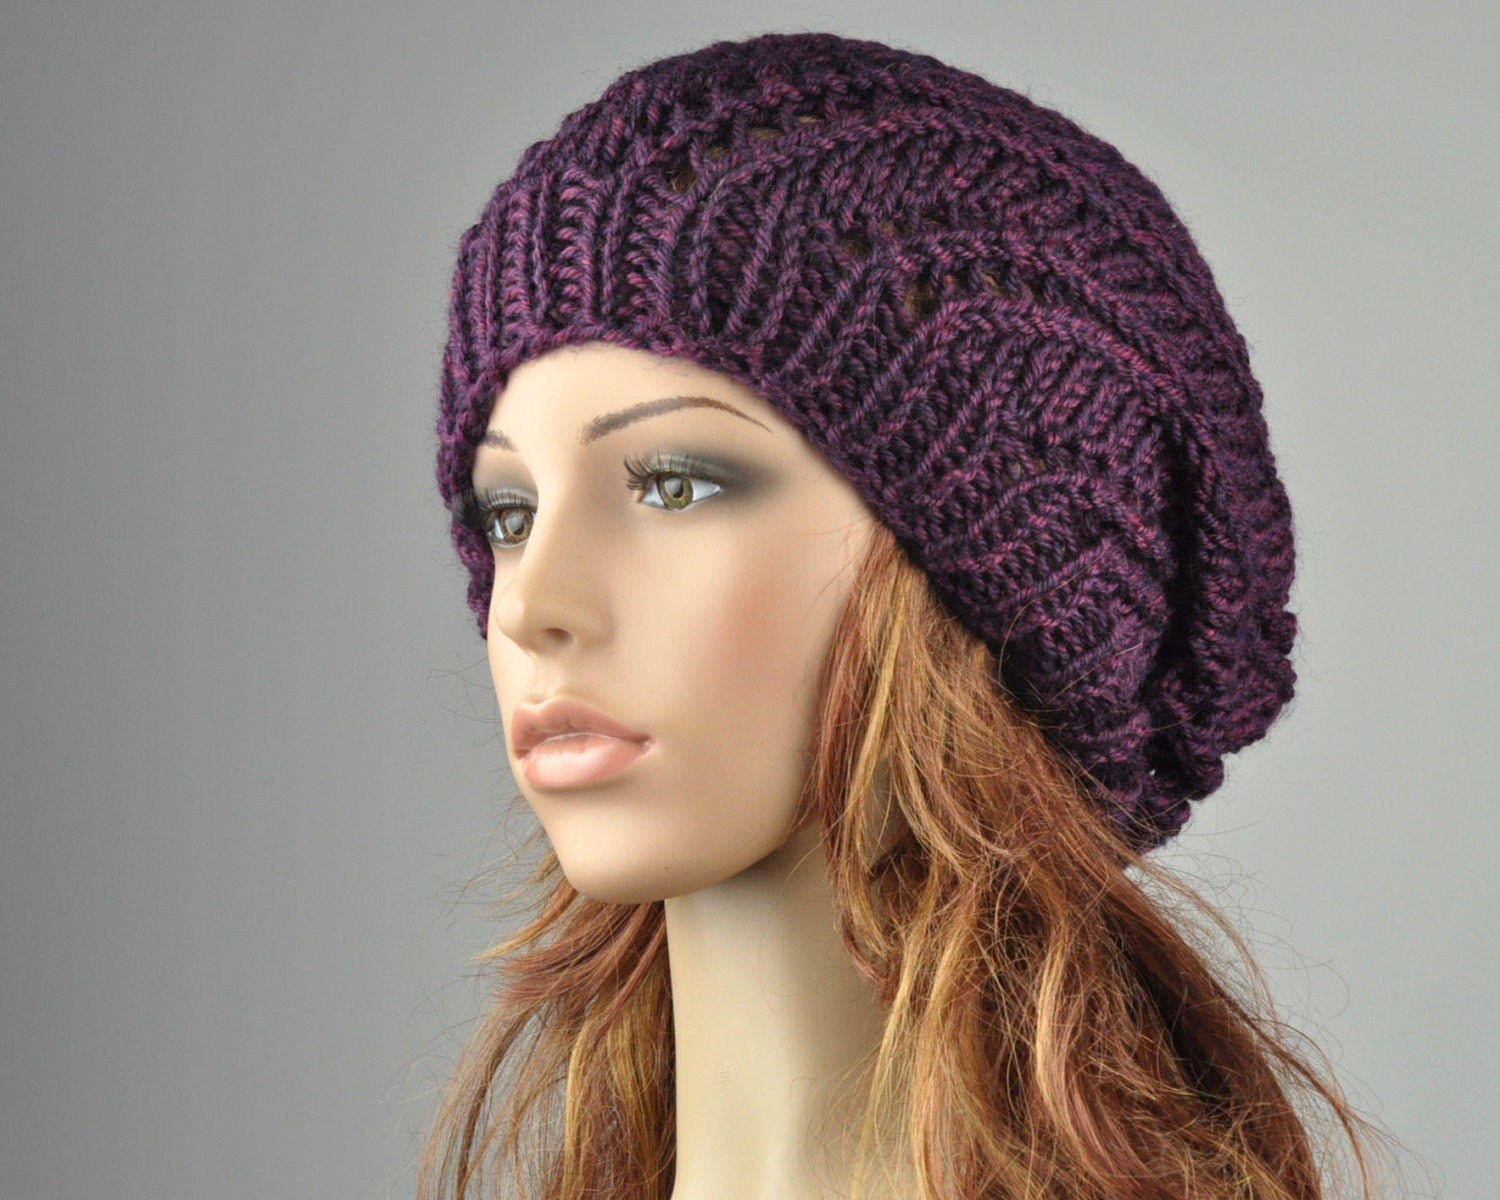 Oversized Beret Knitting Pattern : Hand Knit Hat Oversized Beret Hat in Mulberry